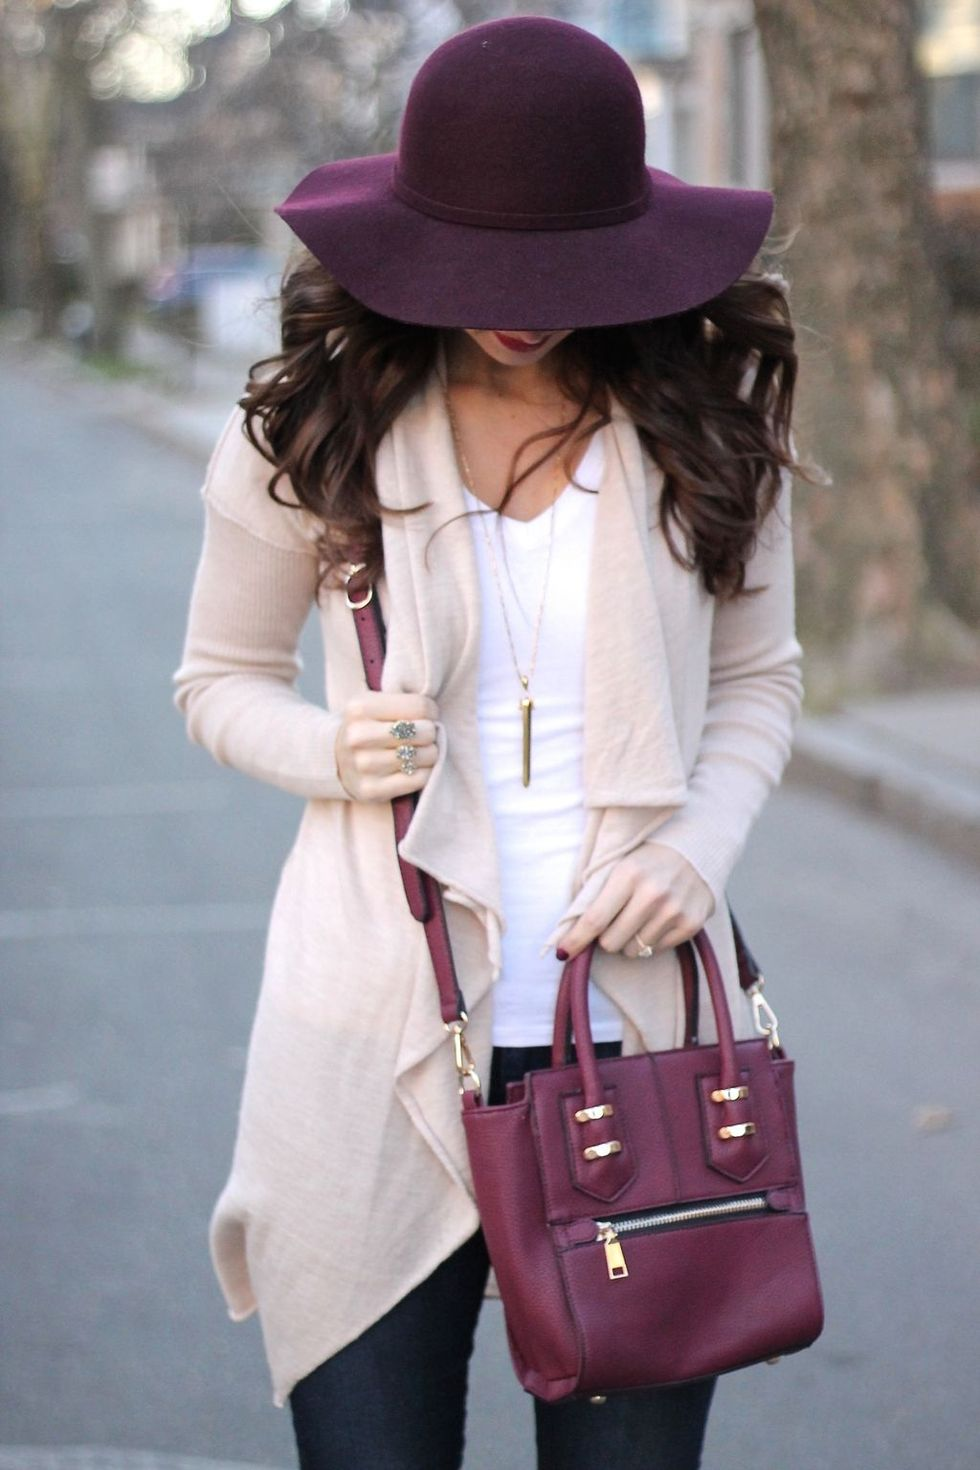 Fashionable Women Hats For Winter And Snow Outfits 10 -4440